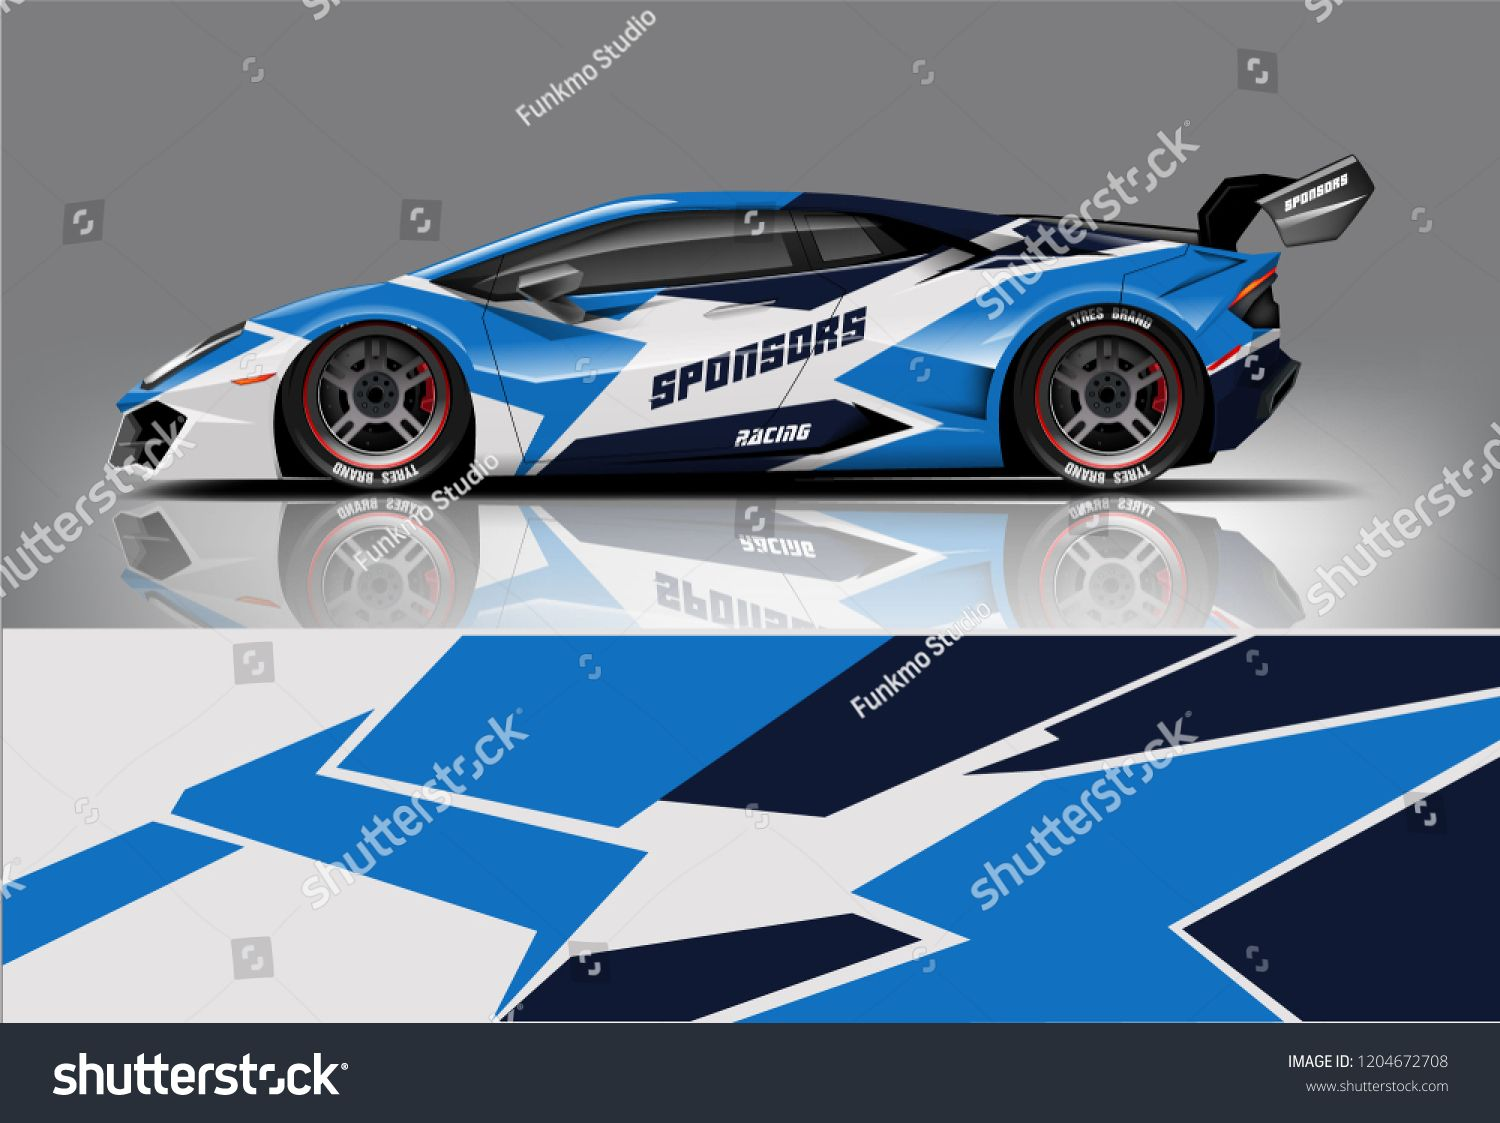 d34b341122 Racing car wrap design. sedan hatchback and sport car wrap design. abstract  background with vector.